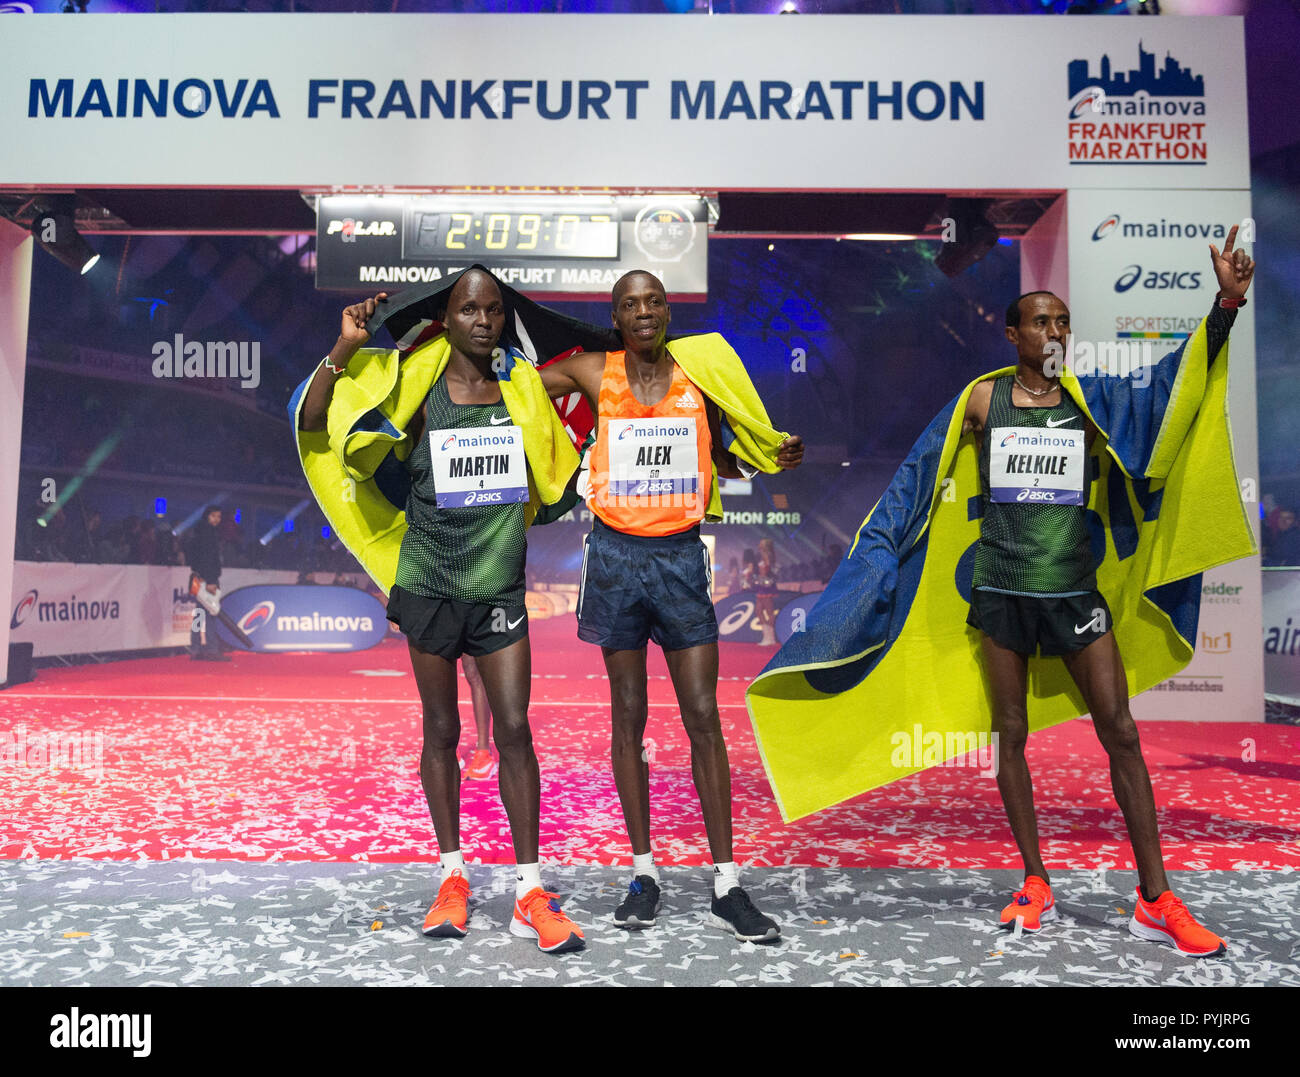 28 October 2018, Hessen, Frankfurt_Main: The winner of the Frankfurt Marathon 2018, Kelkile Gezahegn (r) from Ethiopia, the second placed Martin Kiprugut Kosgey from Kenya (l) and the third placed Alex Kibet from Kenya will finish at the Festhalle. The Frankfurt running event is the oldest city marathon in Germany. Photo: Silas Stein/dpa - Stock Image